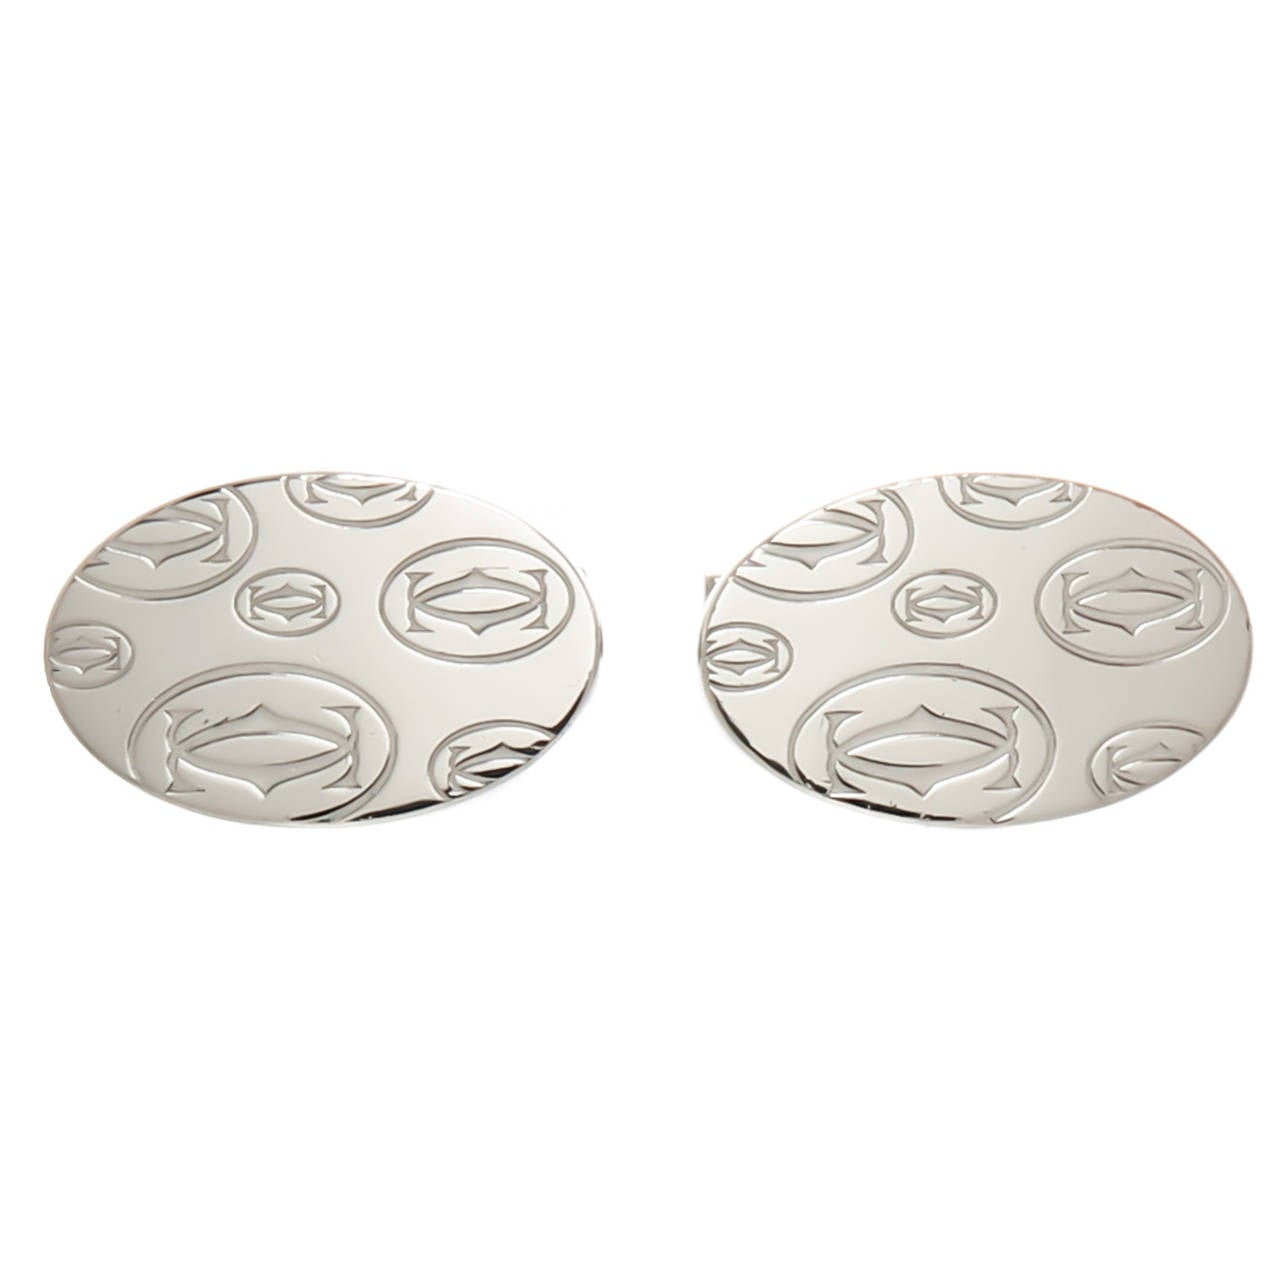 Circa:  2005 Sterling Silver Cartier Cufflinks with the Double C Cartier Logo Design on the top.